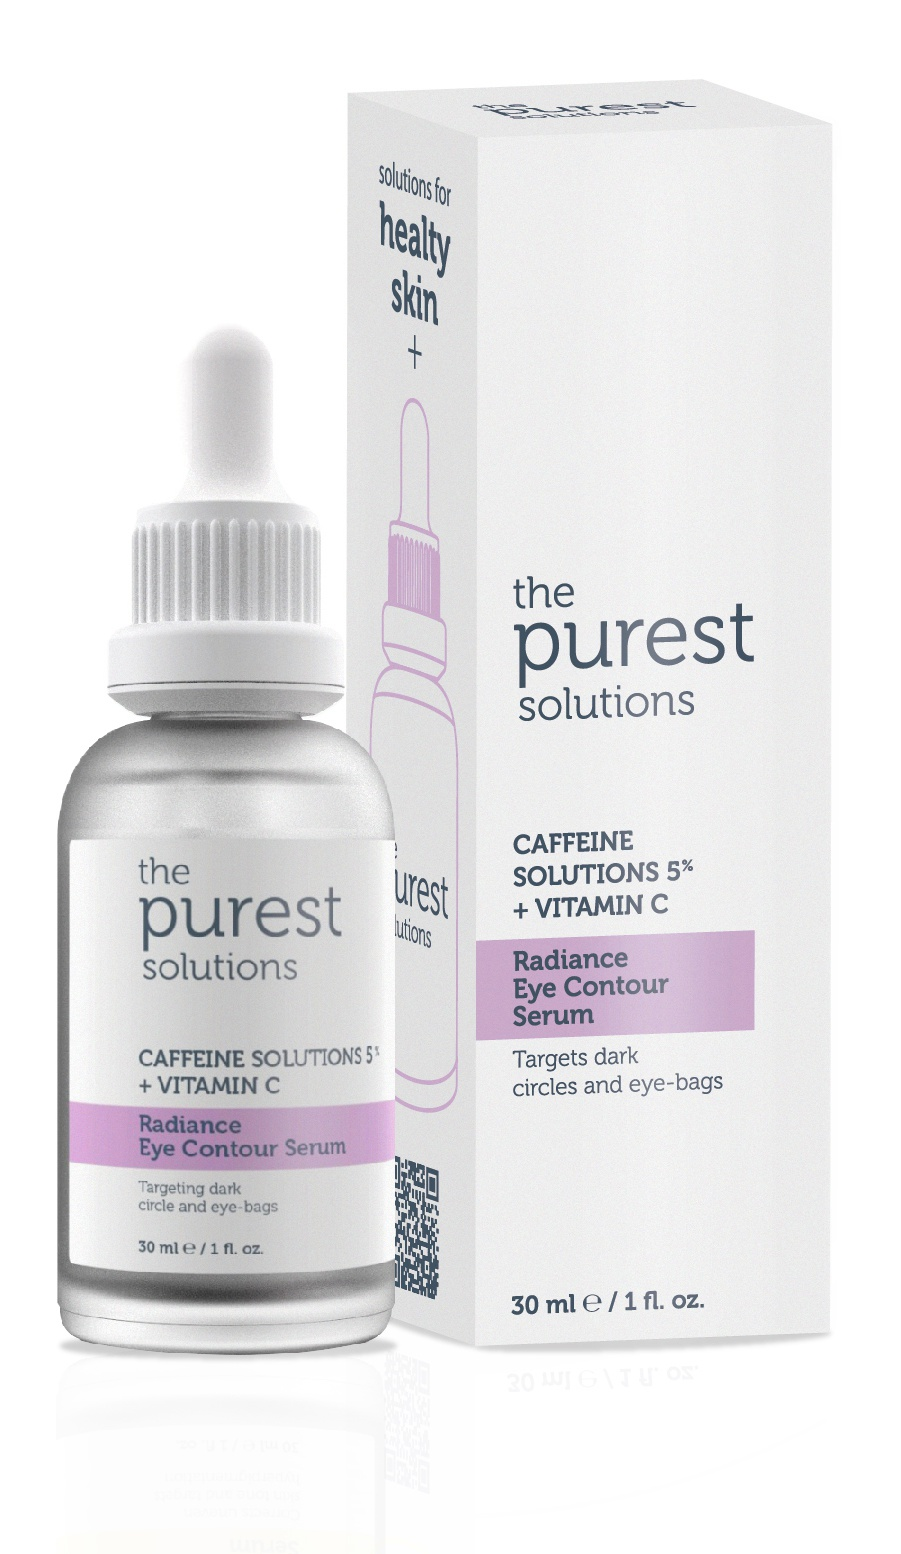 The Purest Solutions Caffeine Solutions 5% + Vitamin C